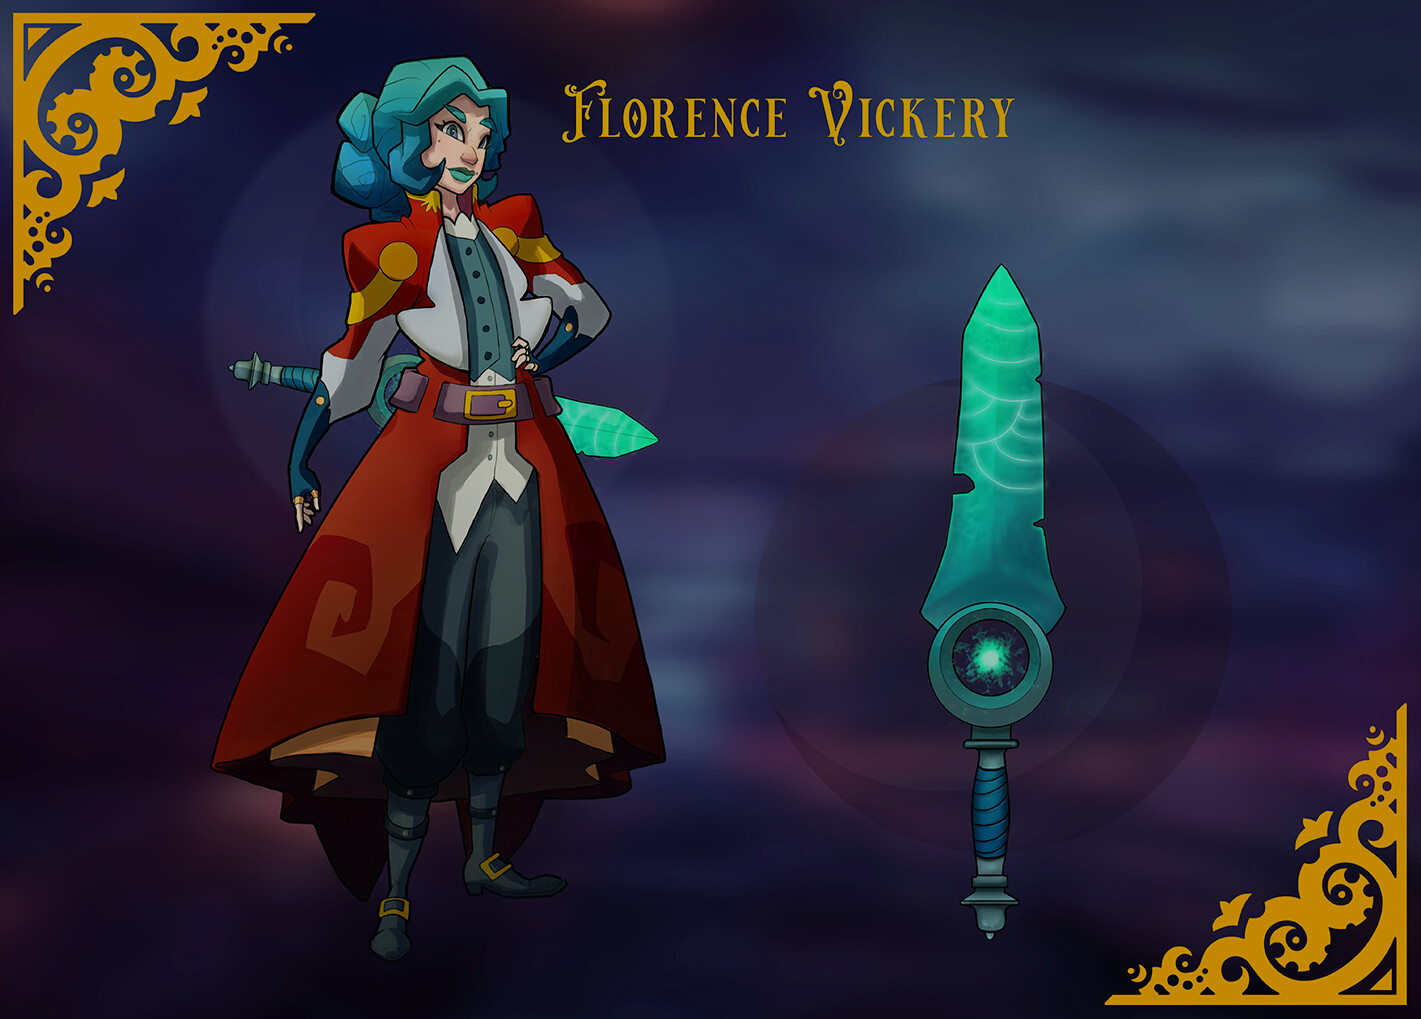 Character Design: Florence Vickery